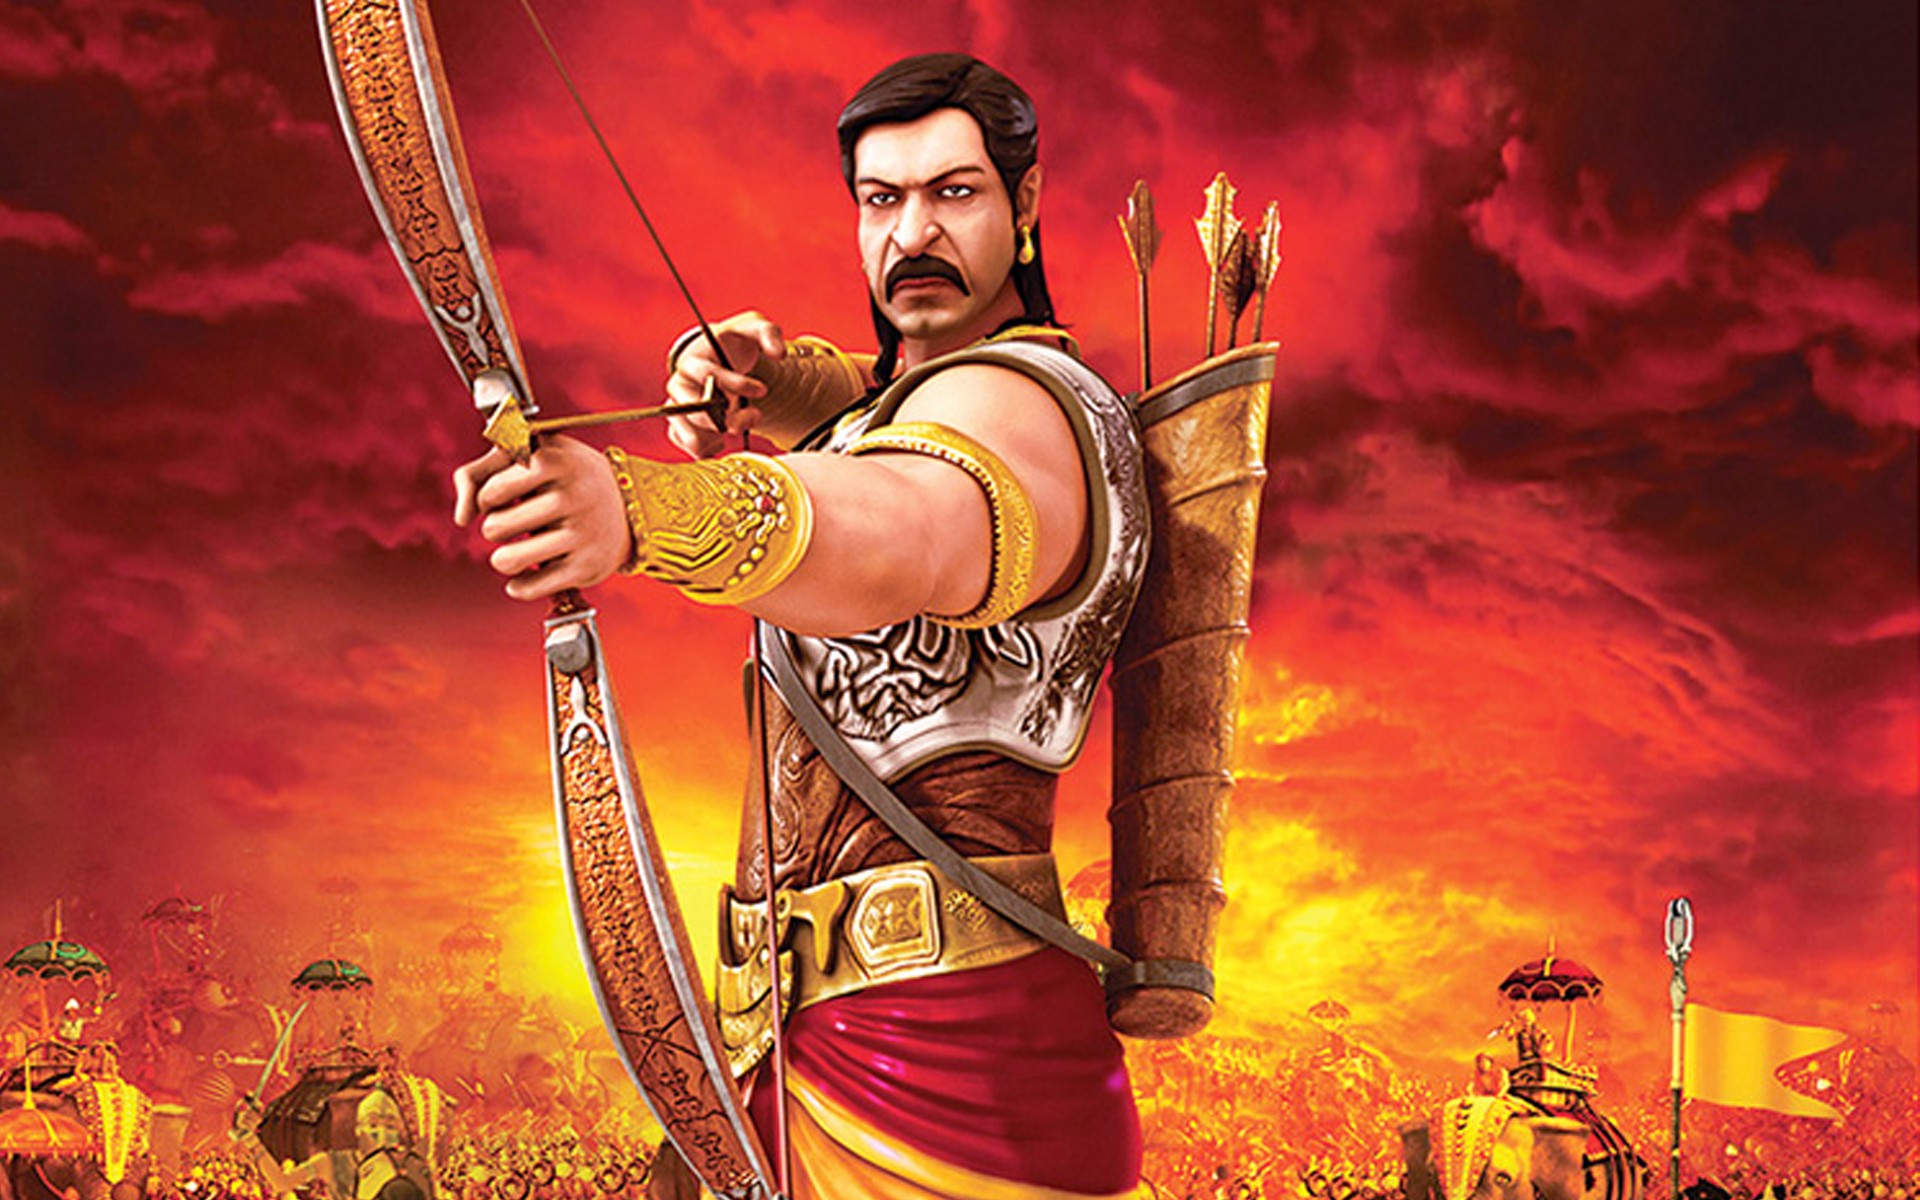 Arjun-Mahabharat-3D-Animation-Movie